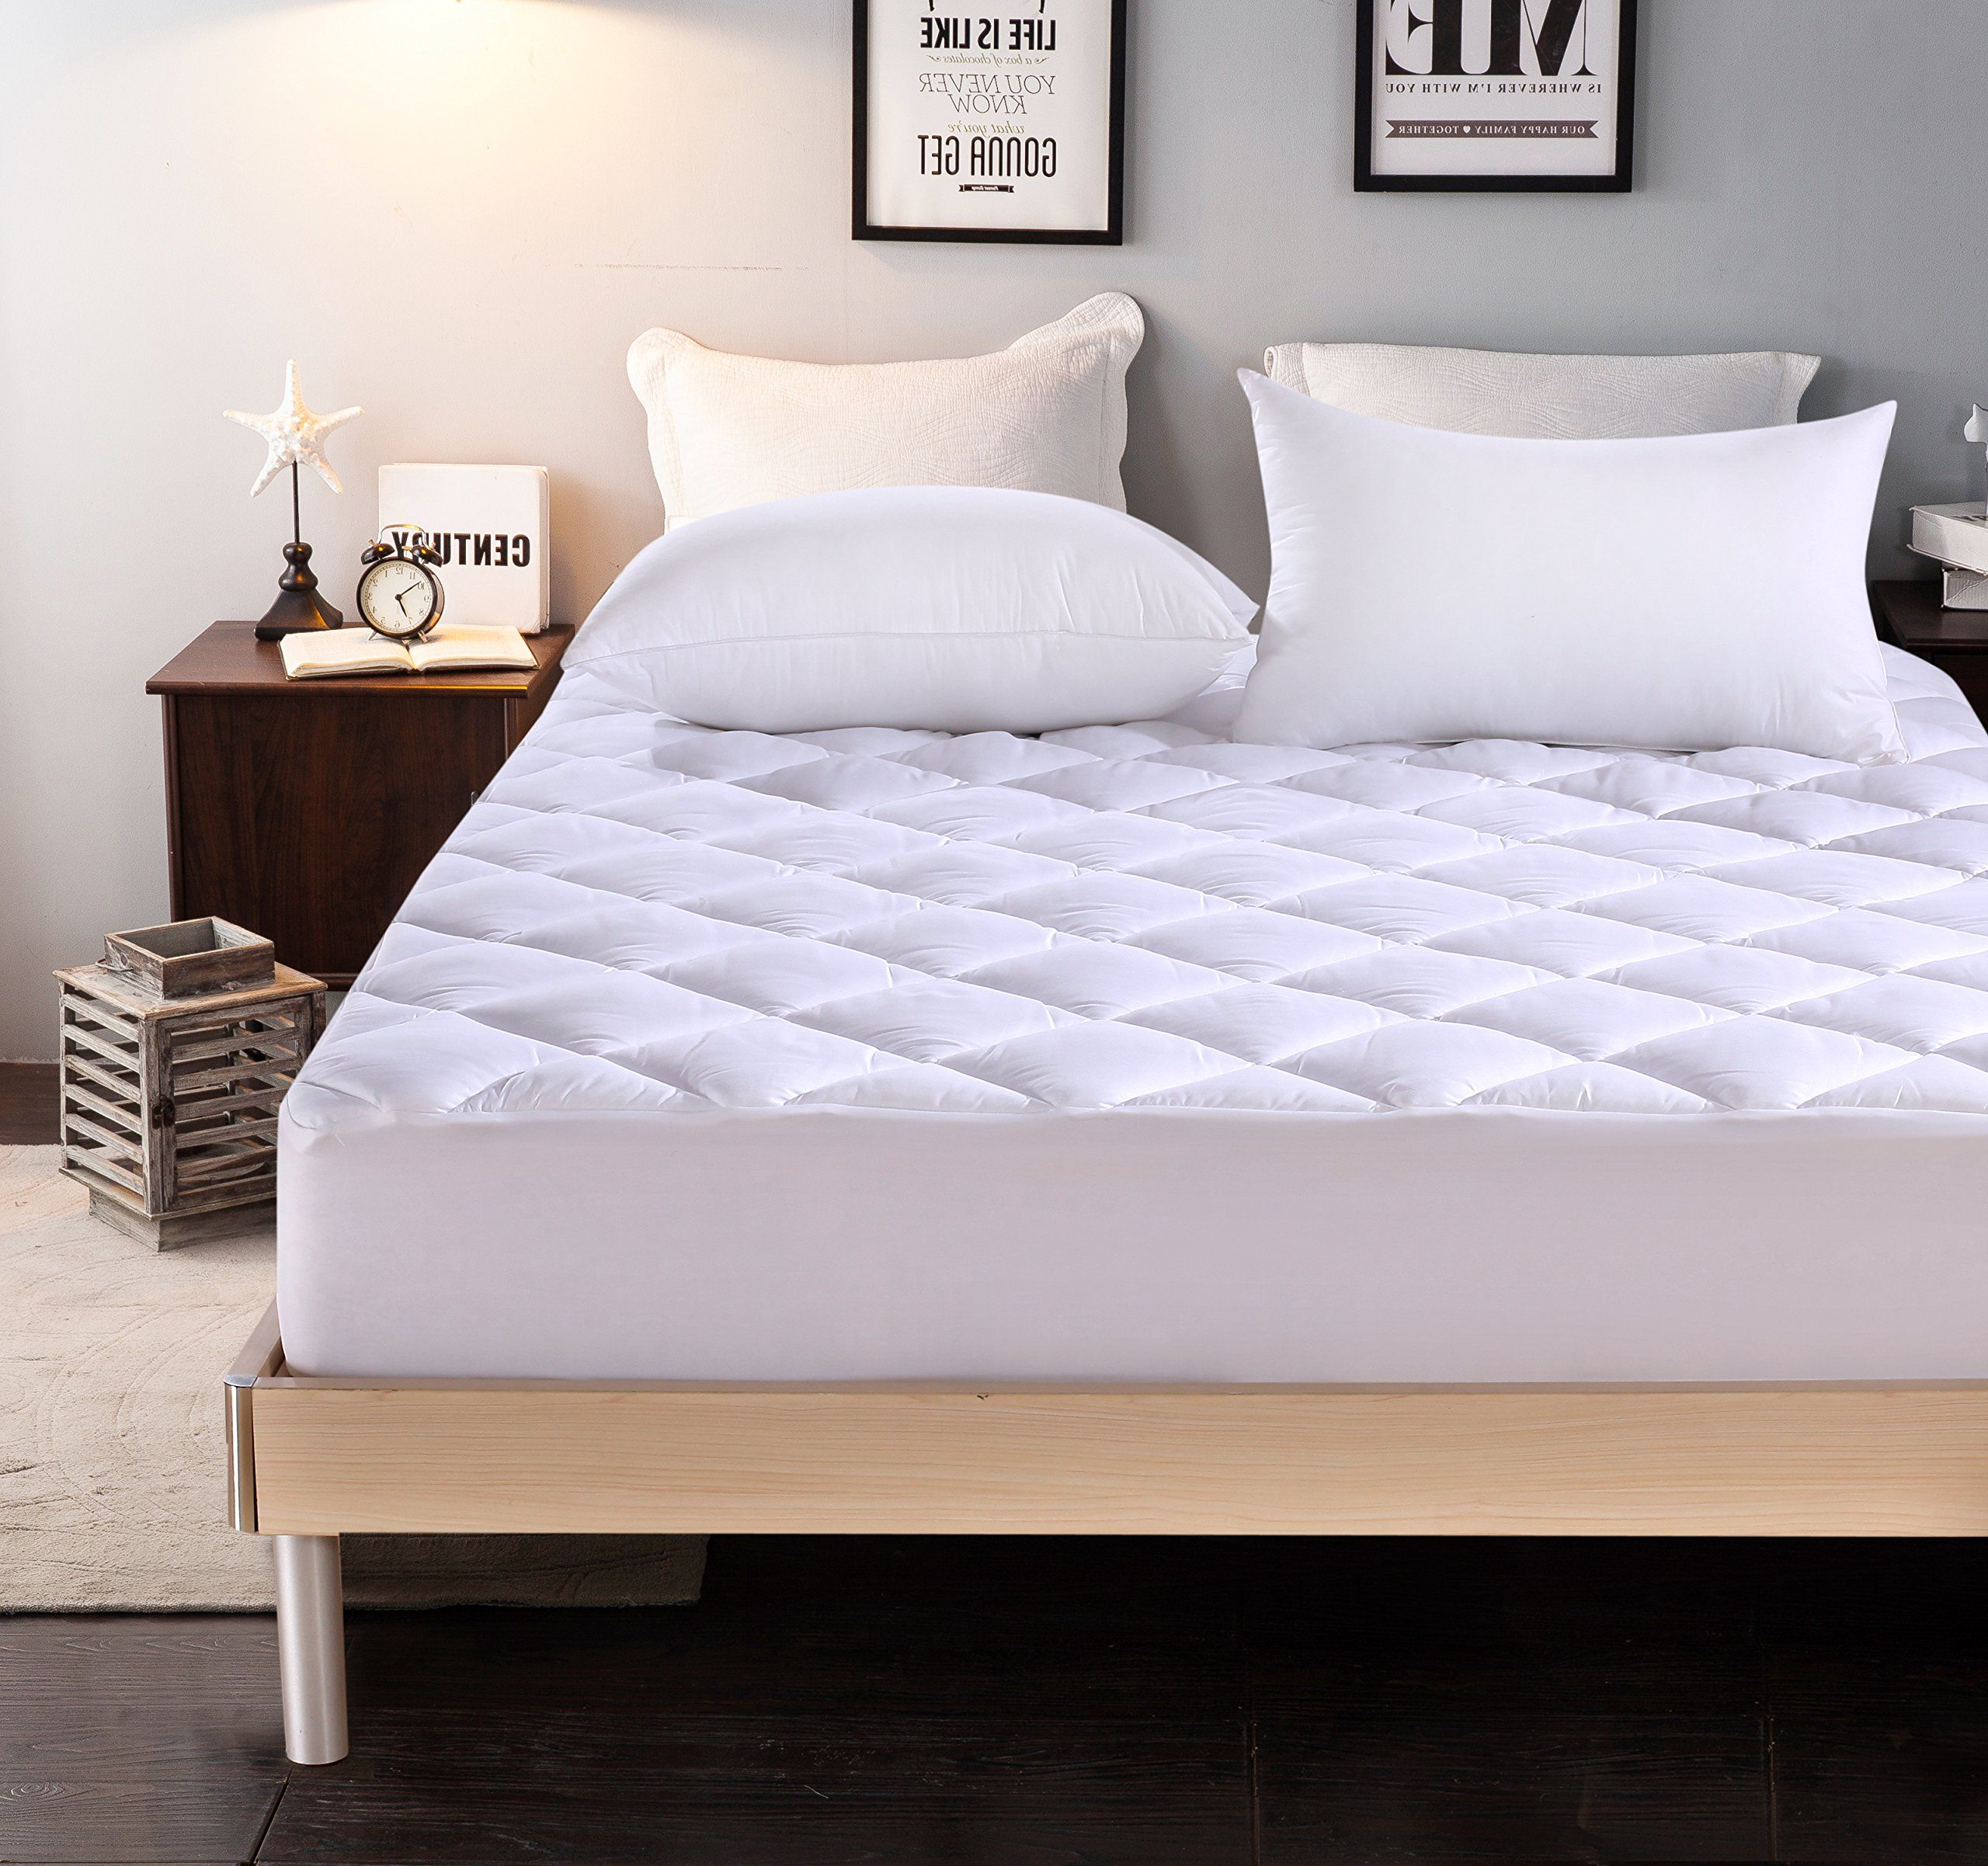 everest extra thick mattress pad queen size 60 x80 18